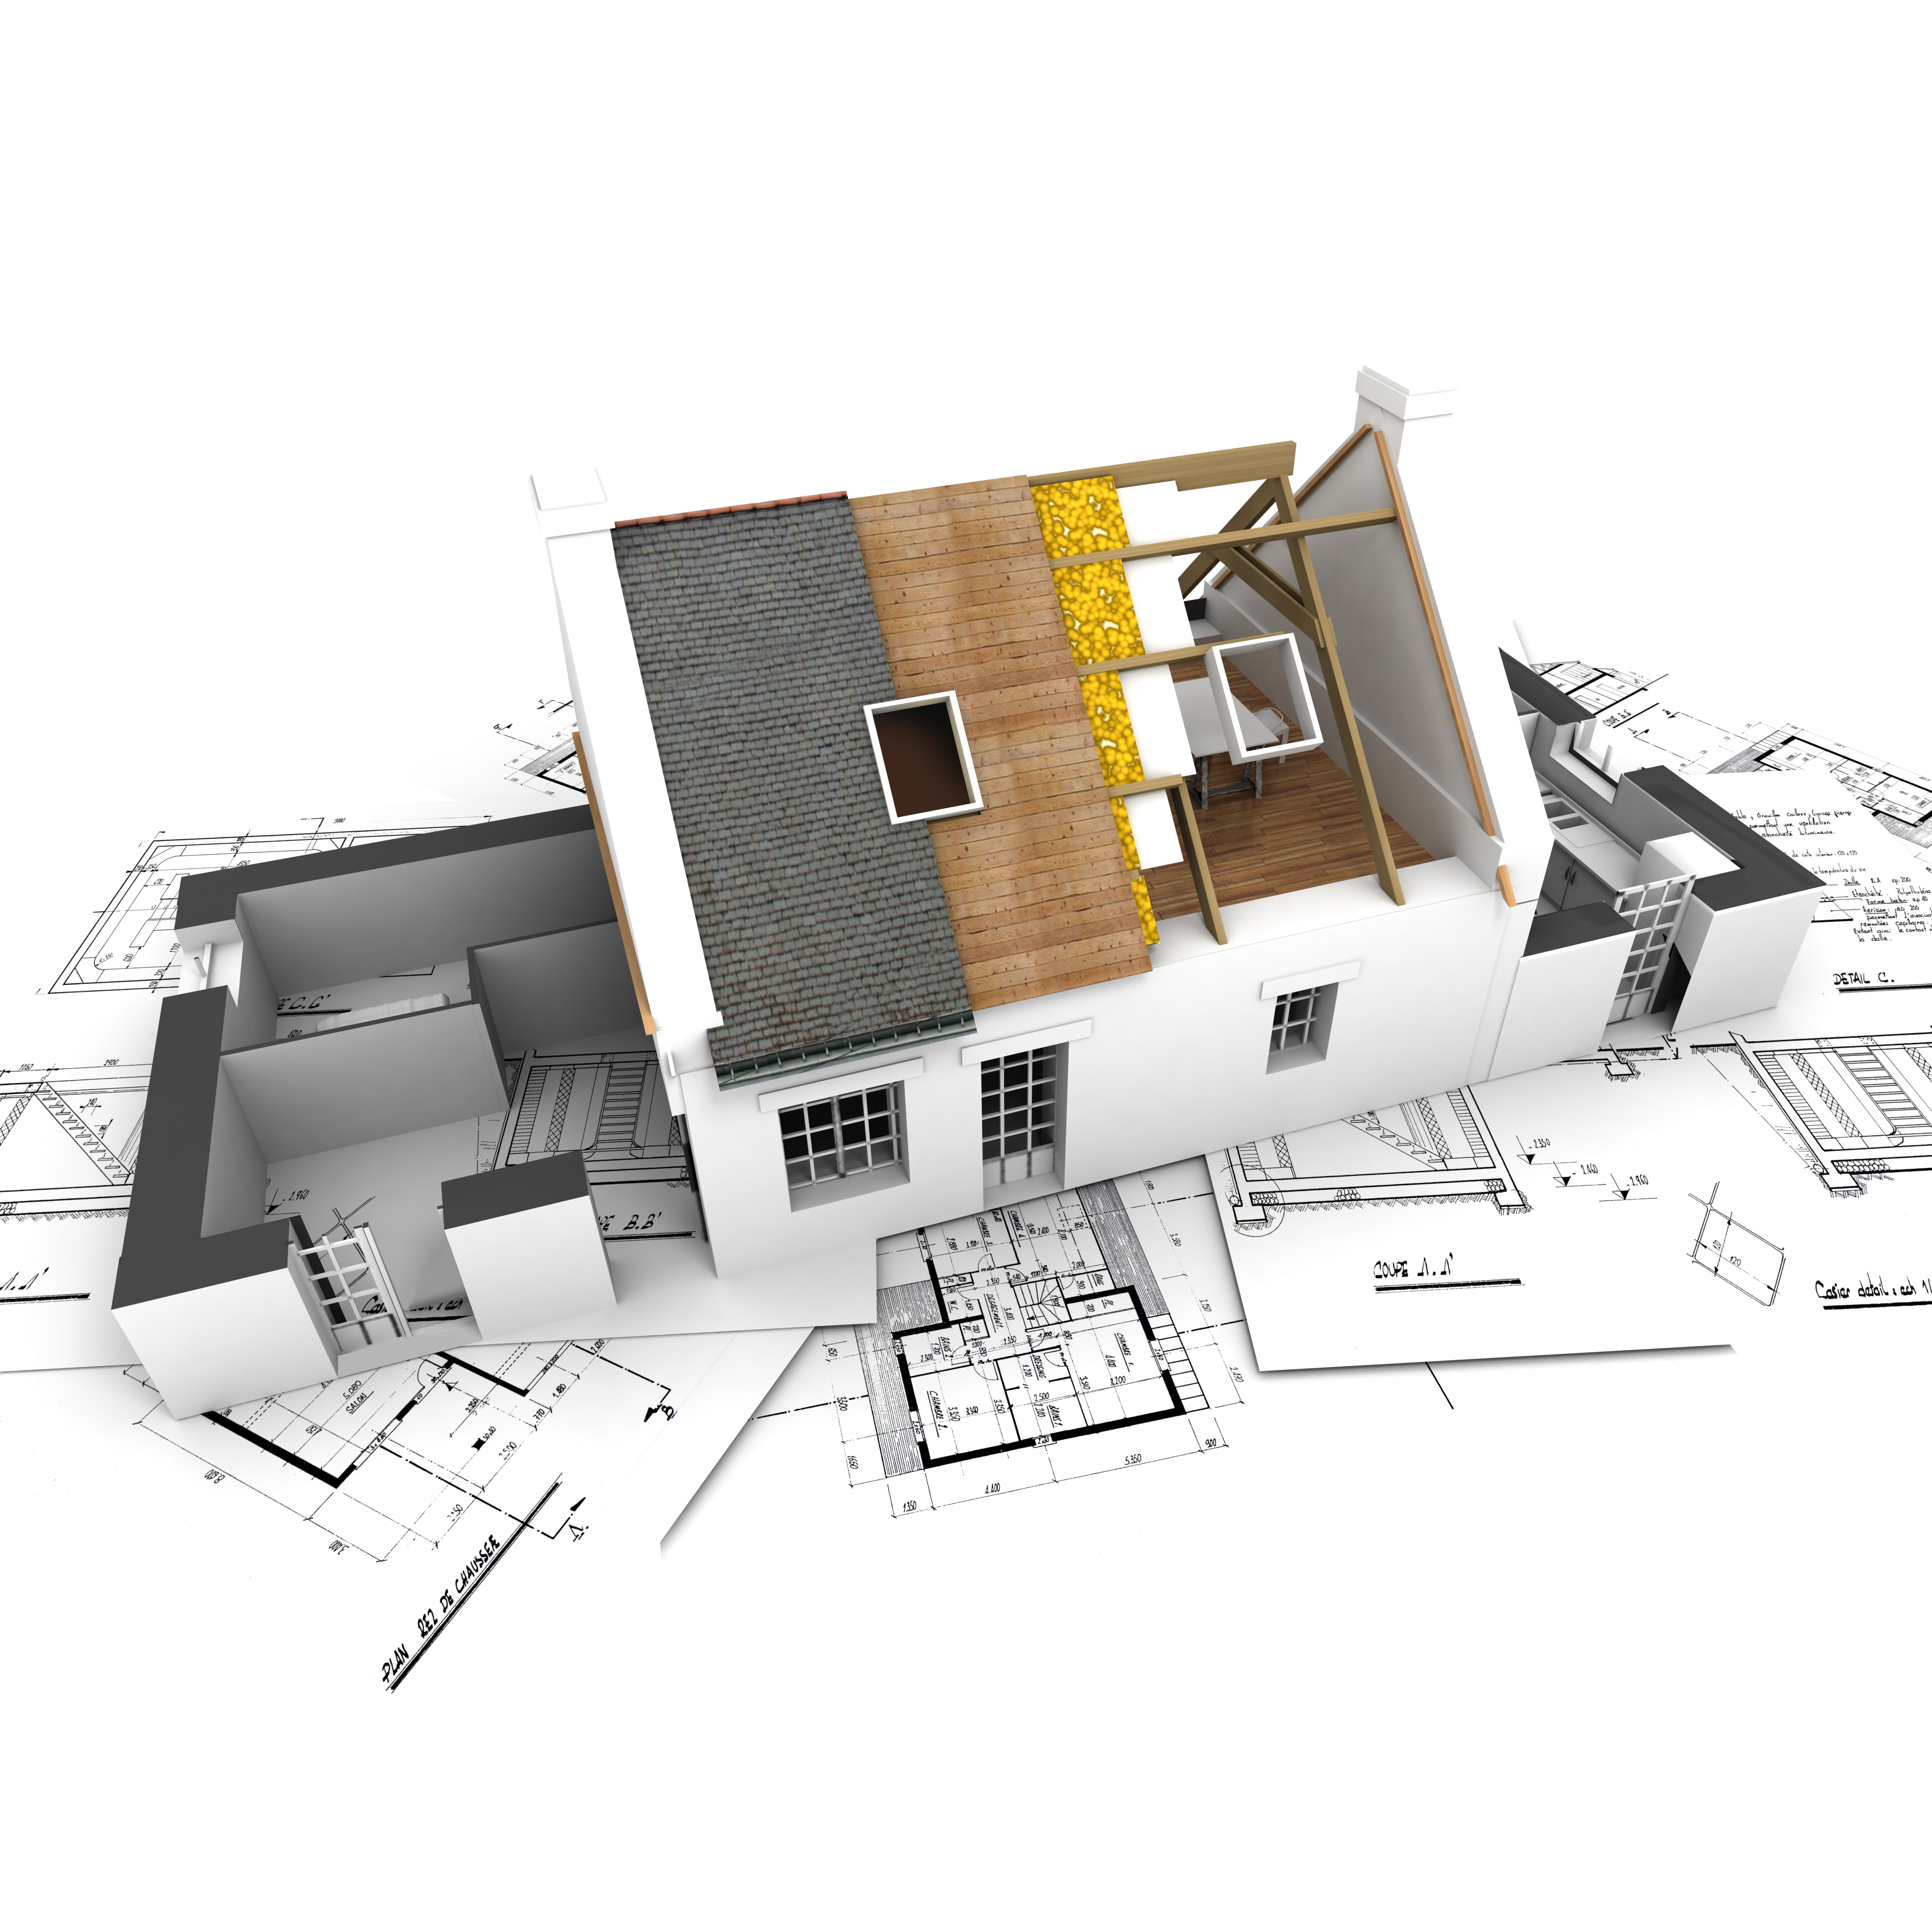 bigstock-House-With-Exposed-Roof-Layers-2602439